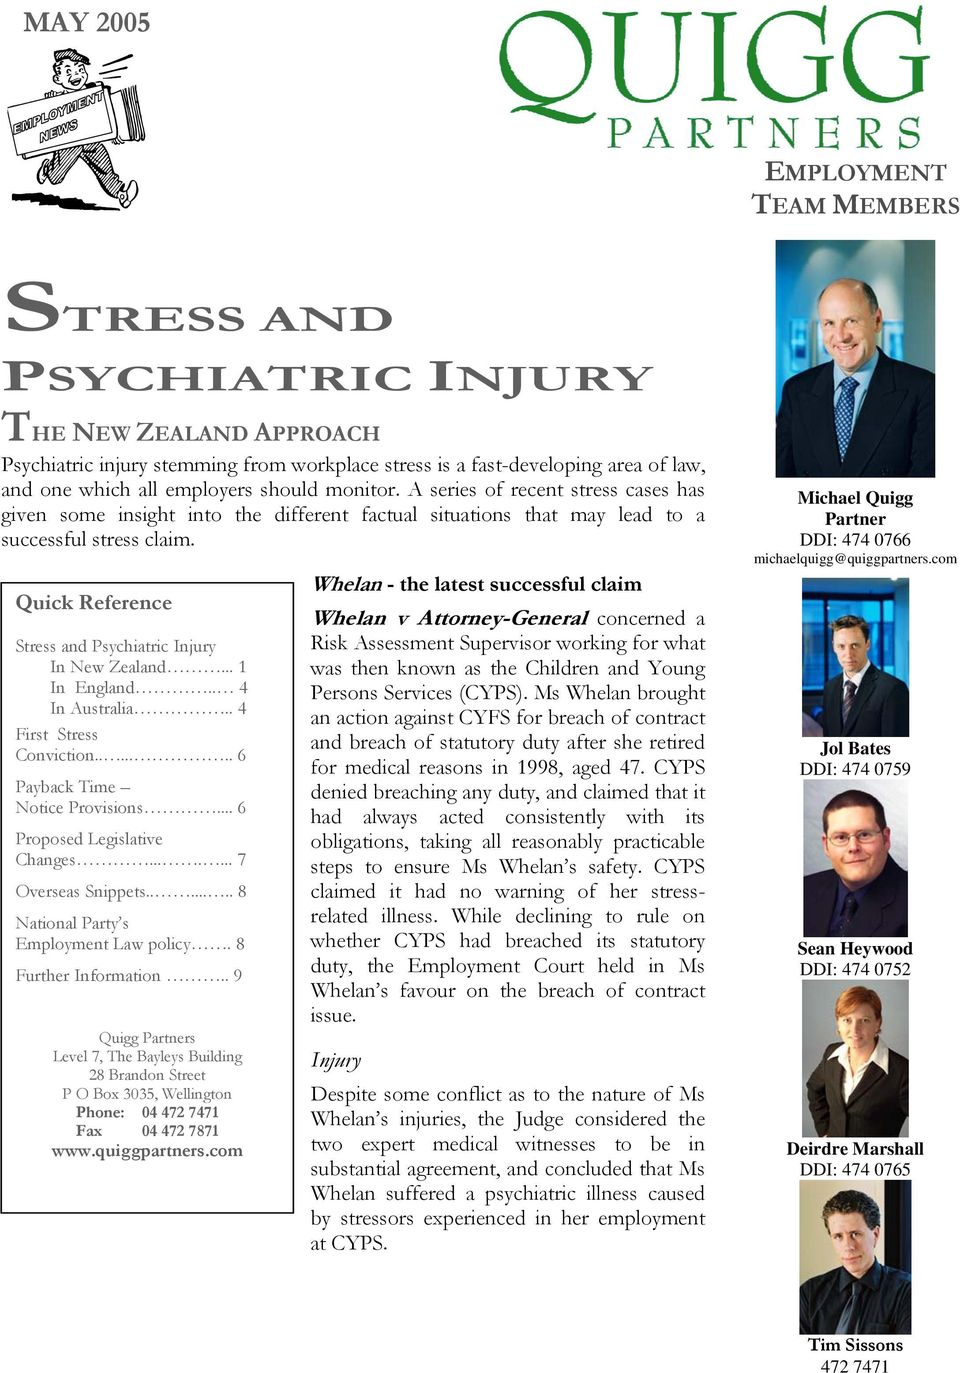 Quick Reference Stress and Psychiatric Injury In New Zealand... 1 In England.. 4 In Australia.. 4 First Stress Conviction....... 6 Payback Time Notice Provisions... 6 Proposed Legislative Changes.